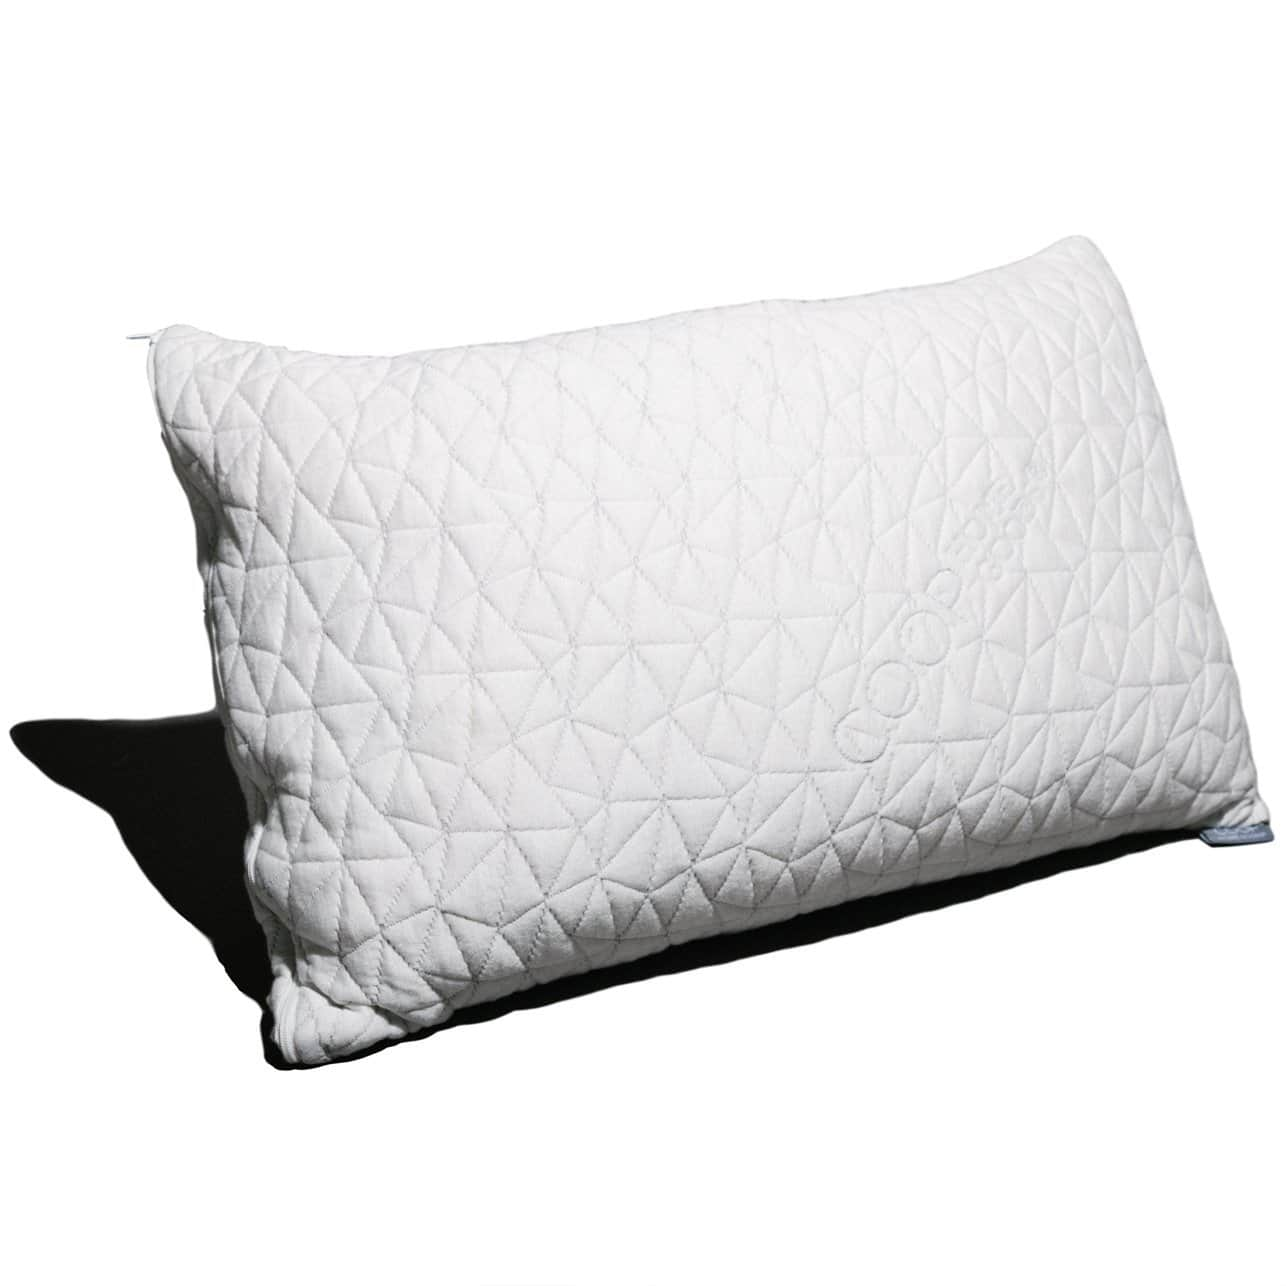 do cooling pillows work?